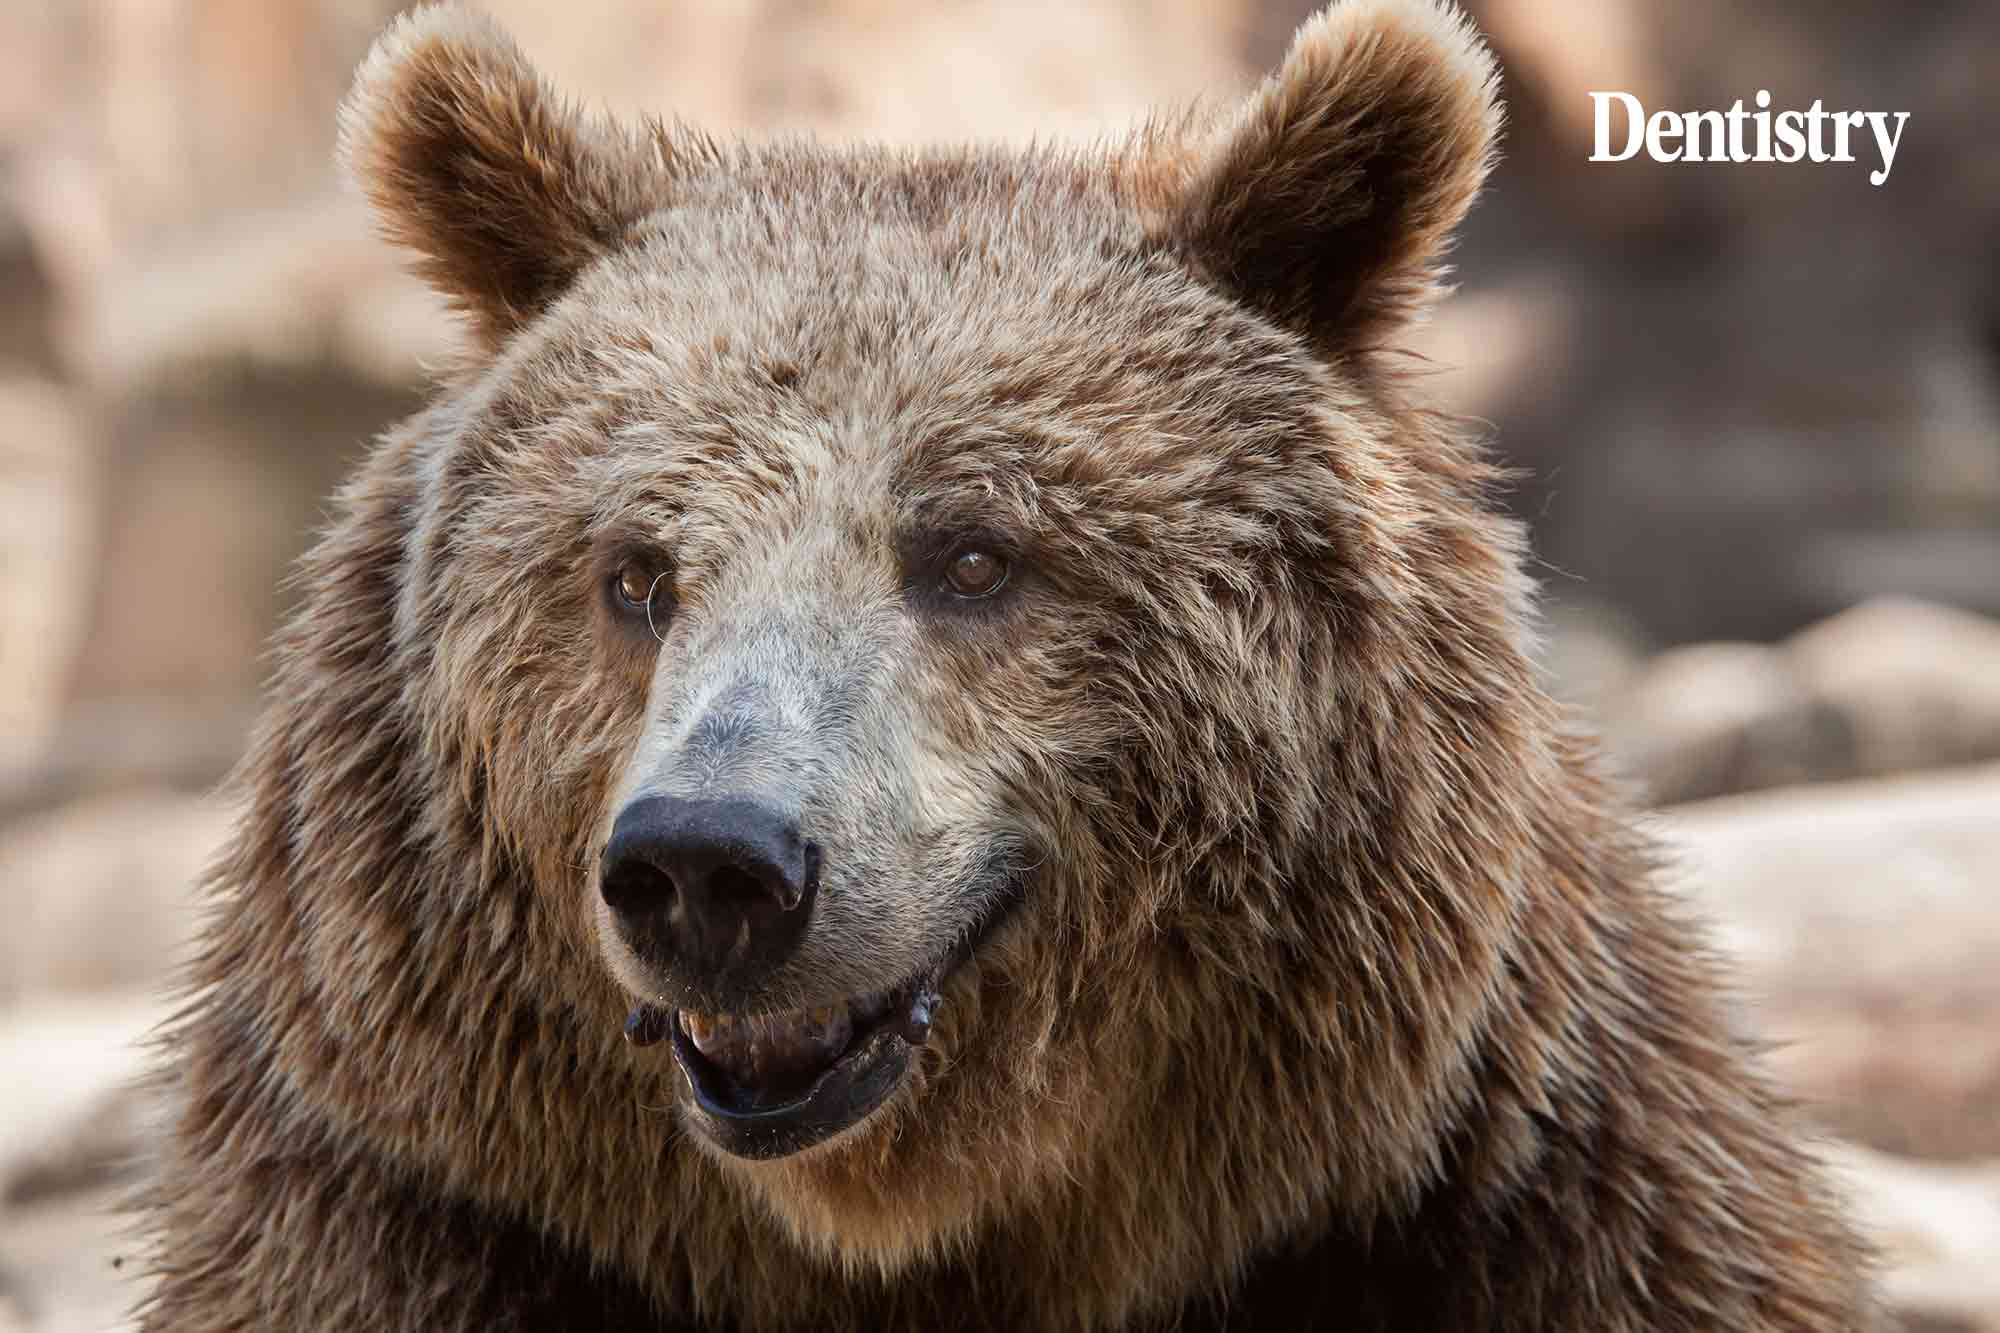 A brown bear suffering from toothache underwent a root canal treatment to remove an abscess